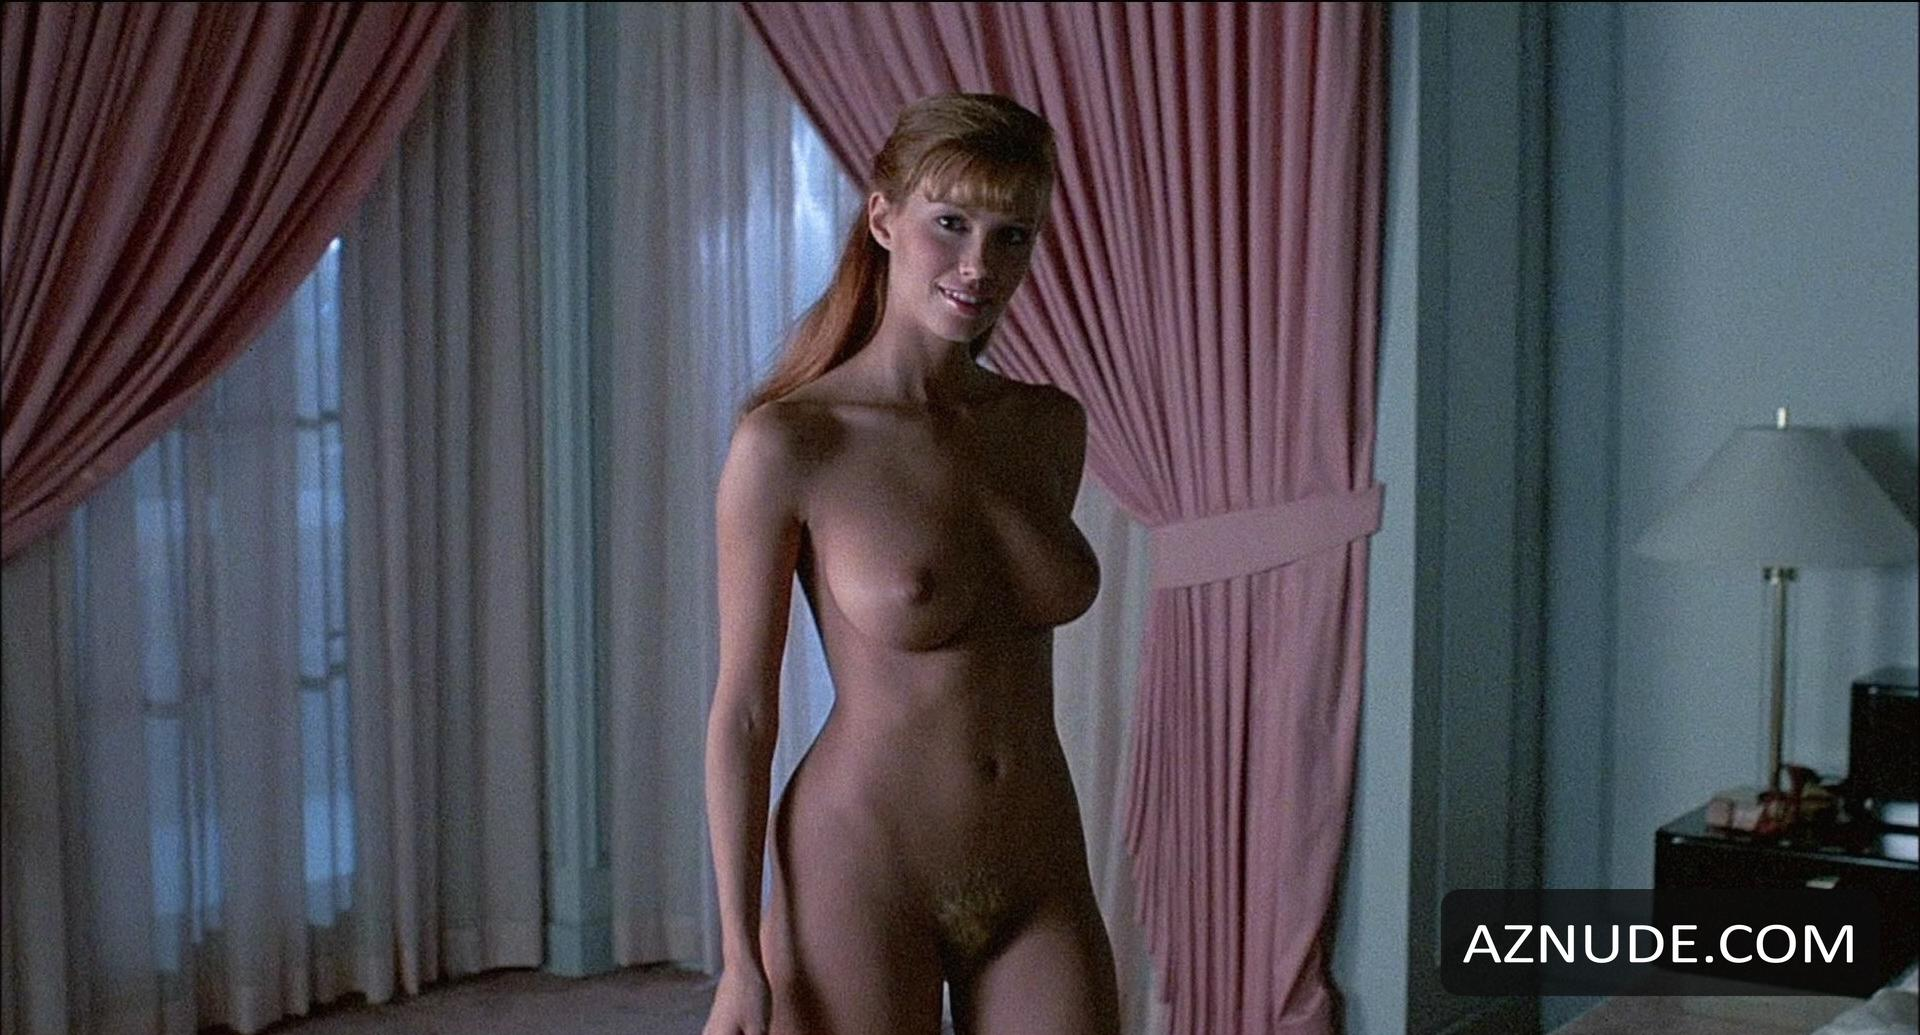 Browse Celebrity Redhead Images - Page 1 - AZNude